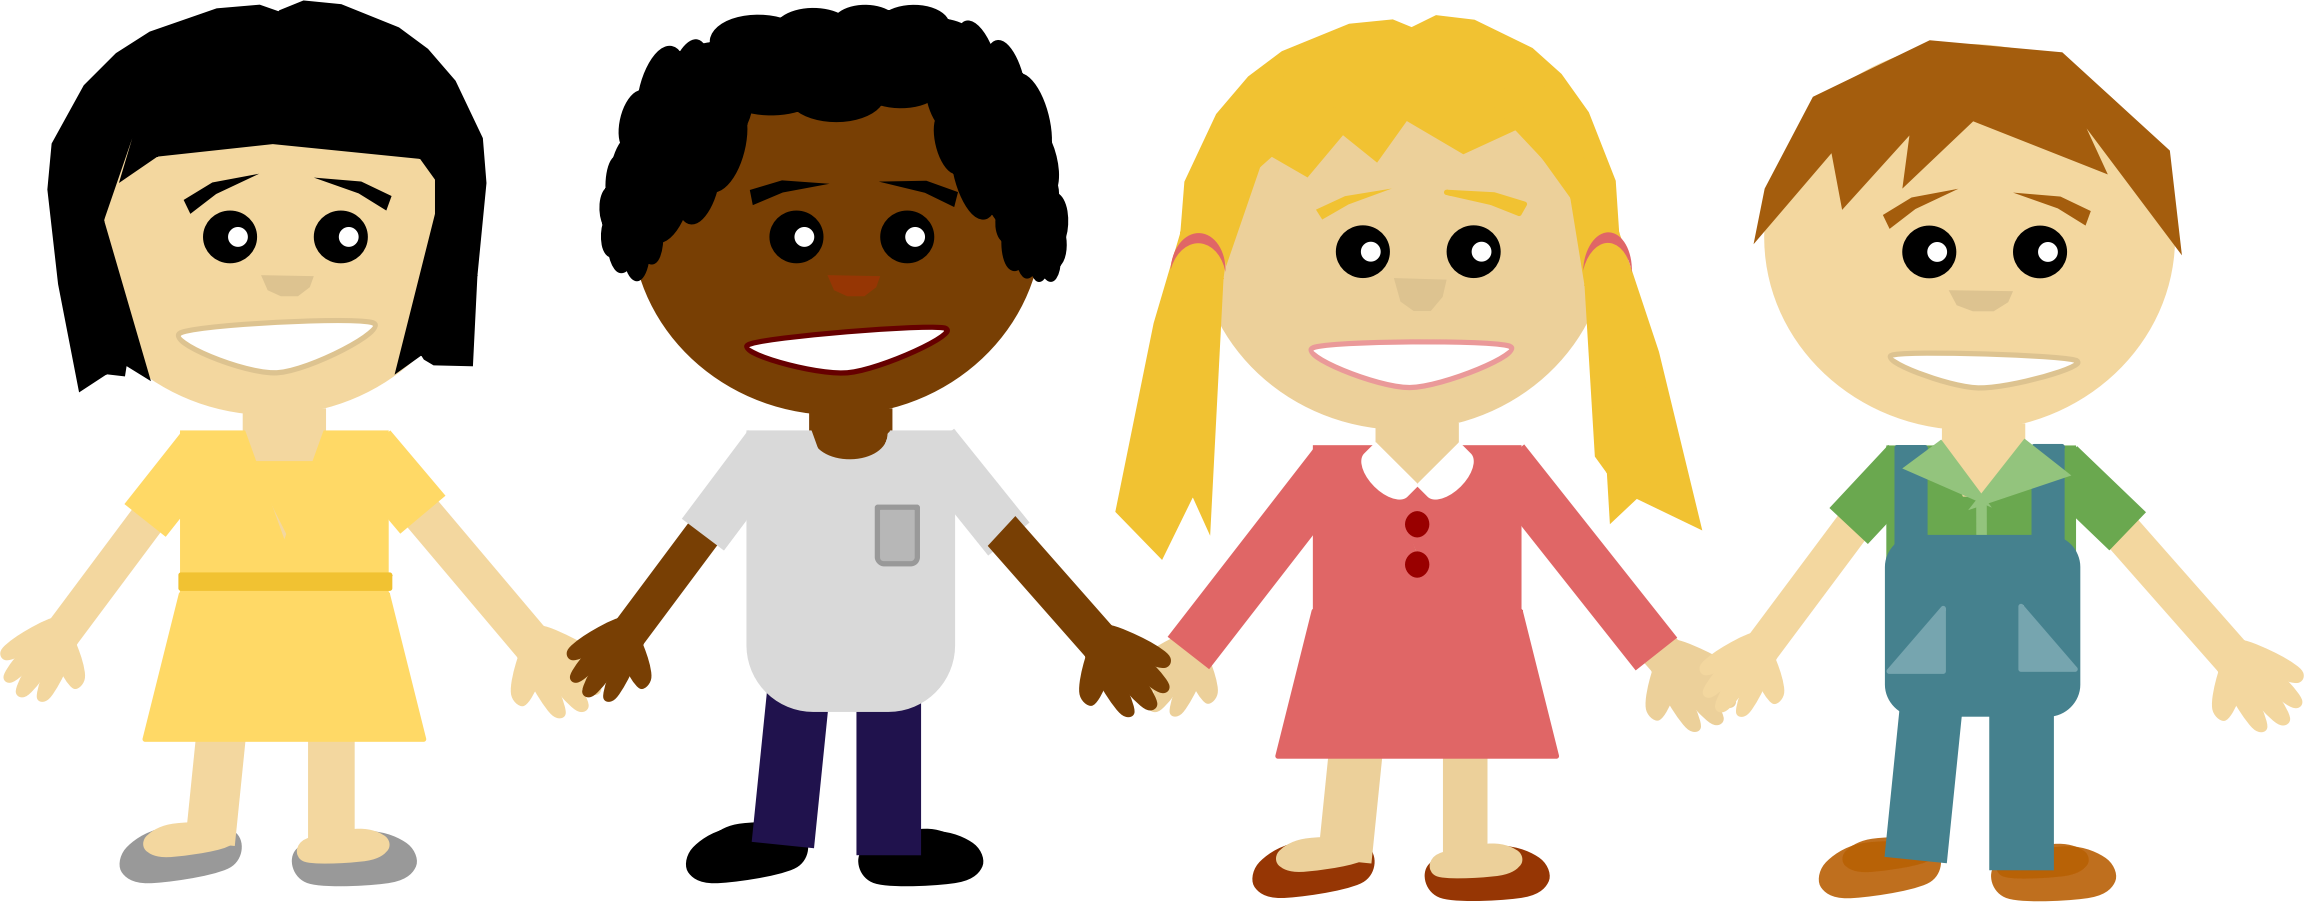 children hands clipart - photo #8